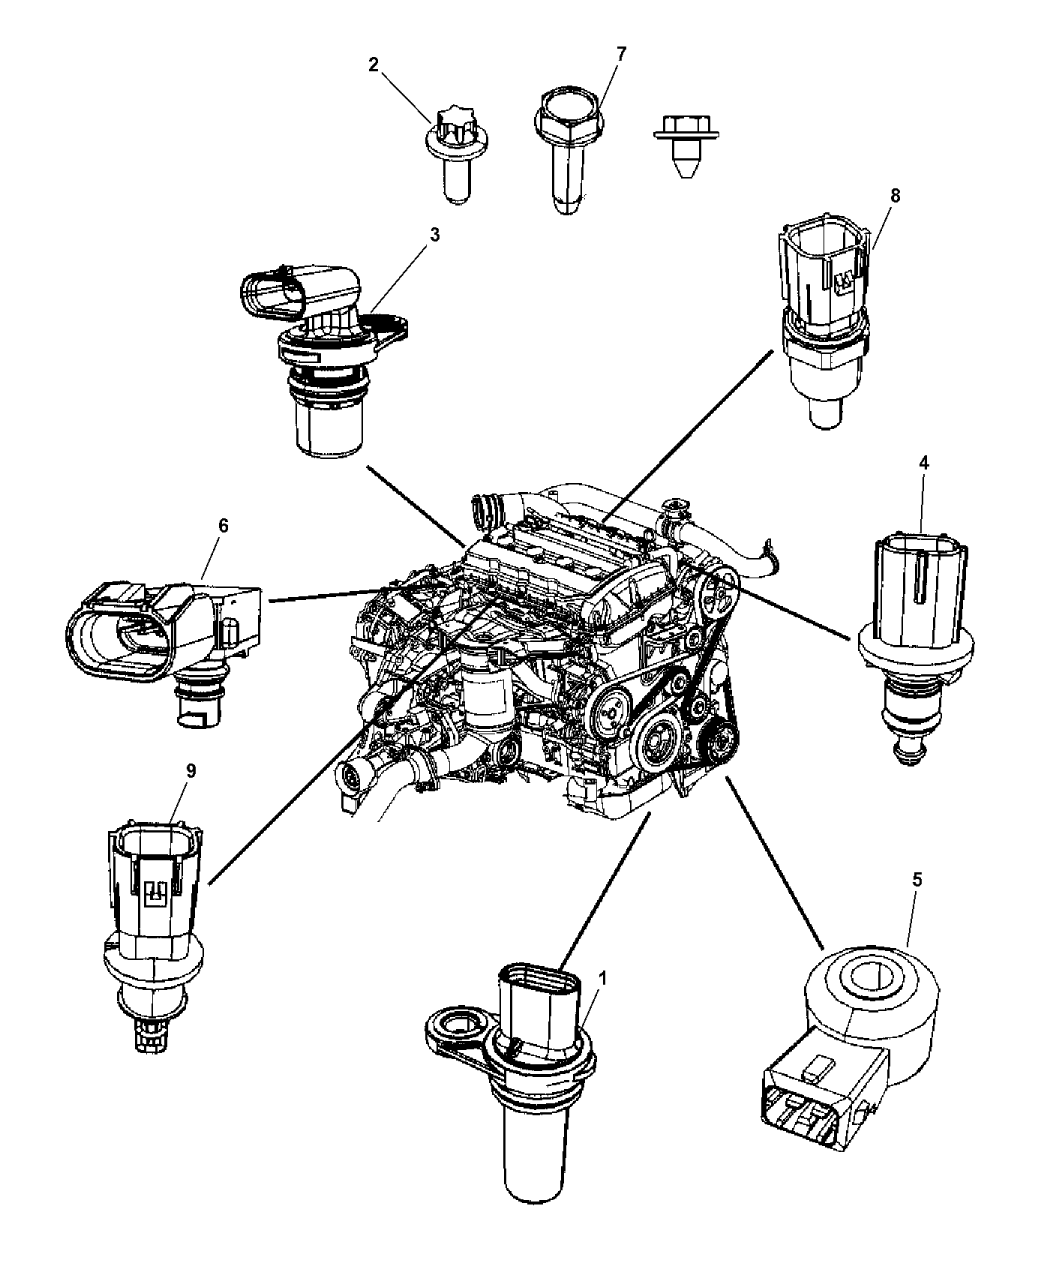 2007 jeep compass sensors engine gas mopar parts giant rh moparpartsgiant com 2008 Jeep Compass 2.0 Engine Coolant Diagram 2007 Jeep Compass Wiring Diagram Schematic